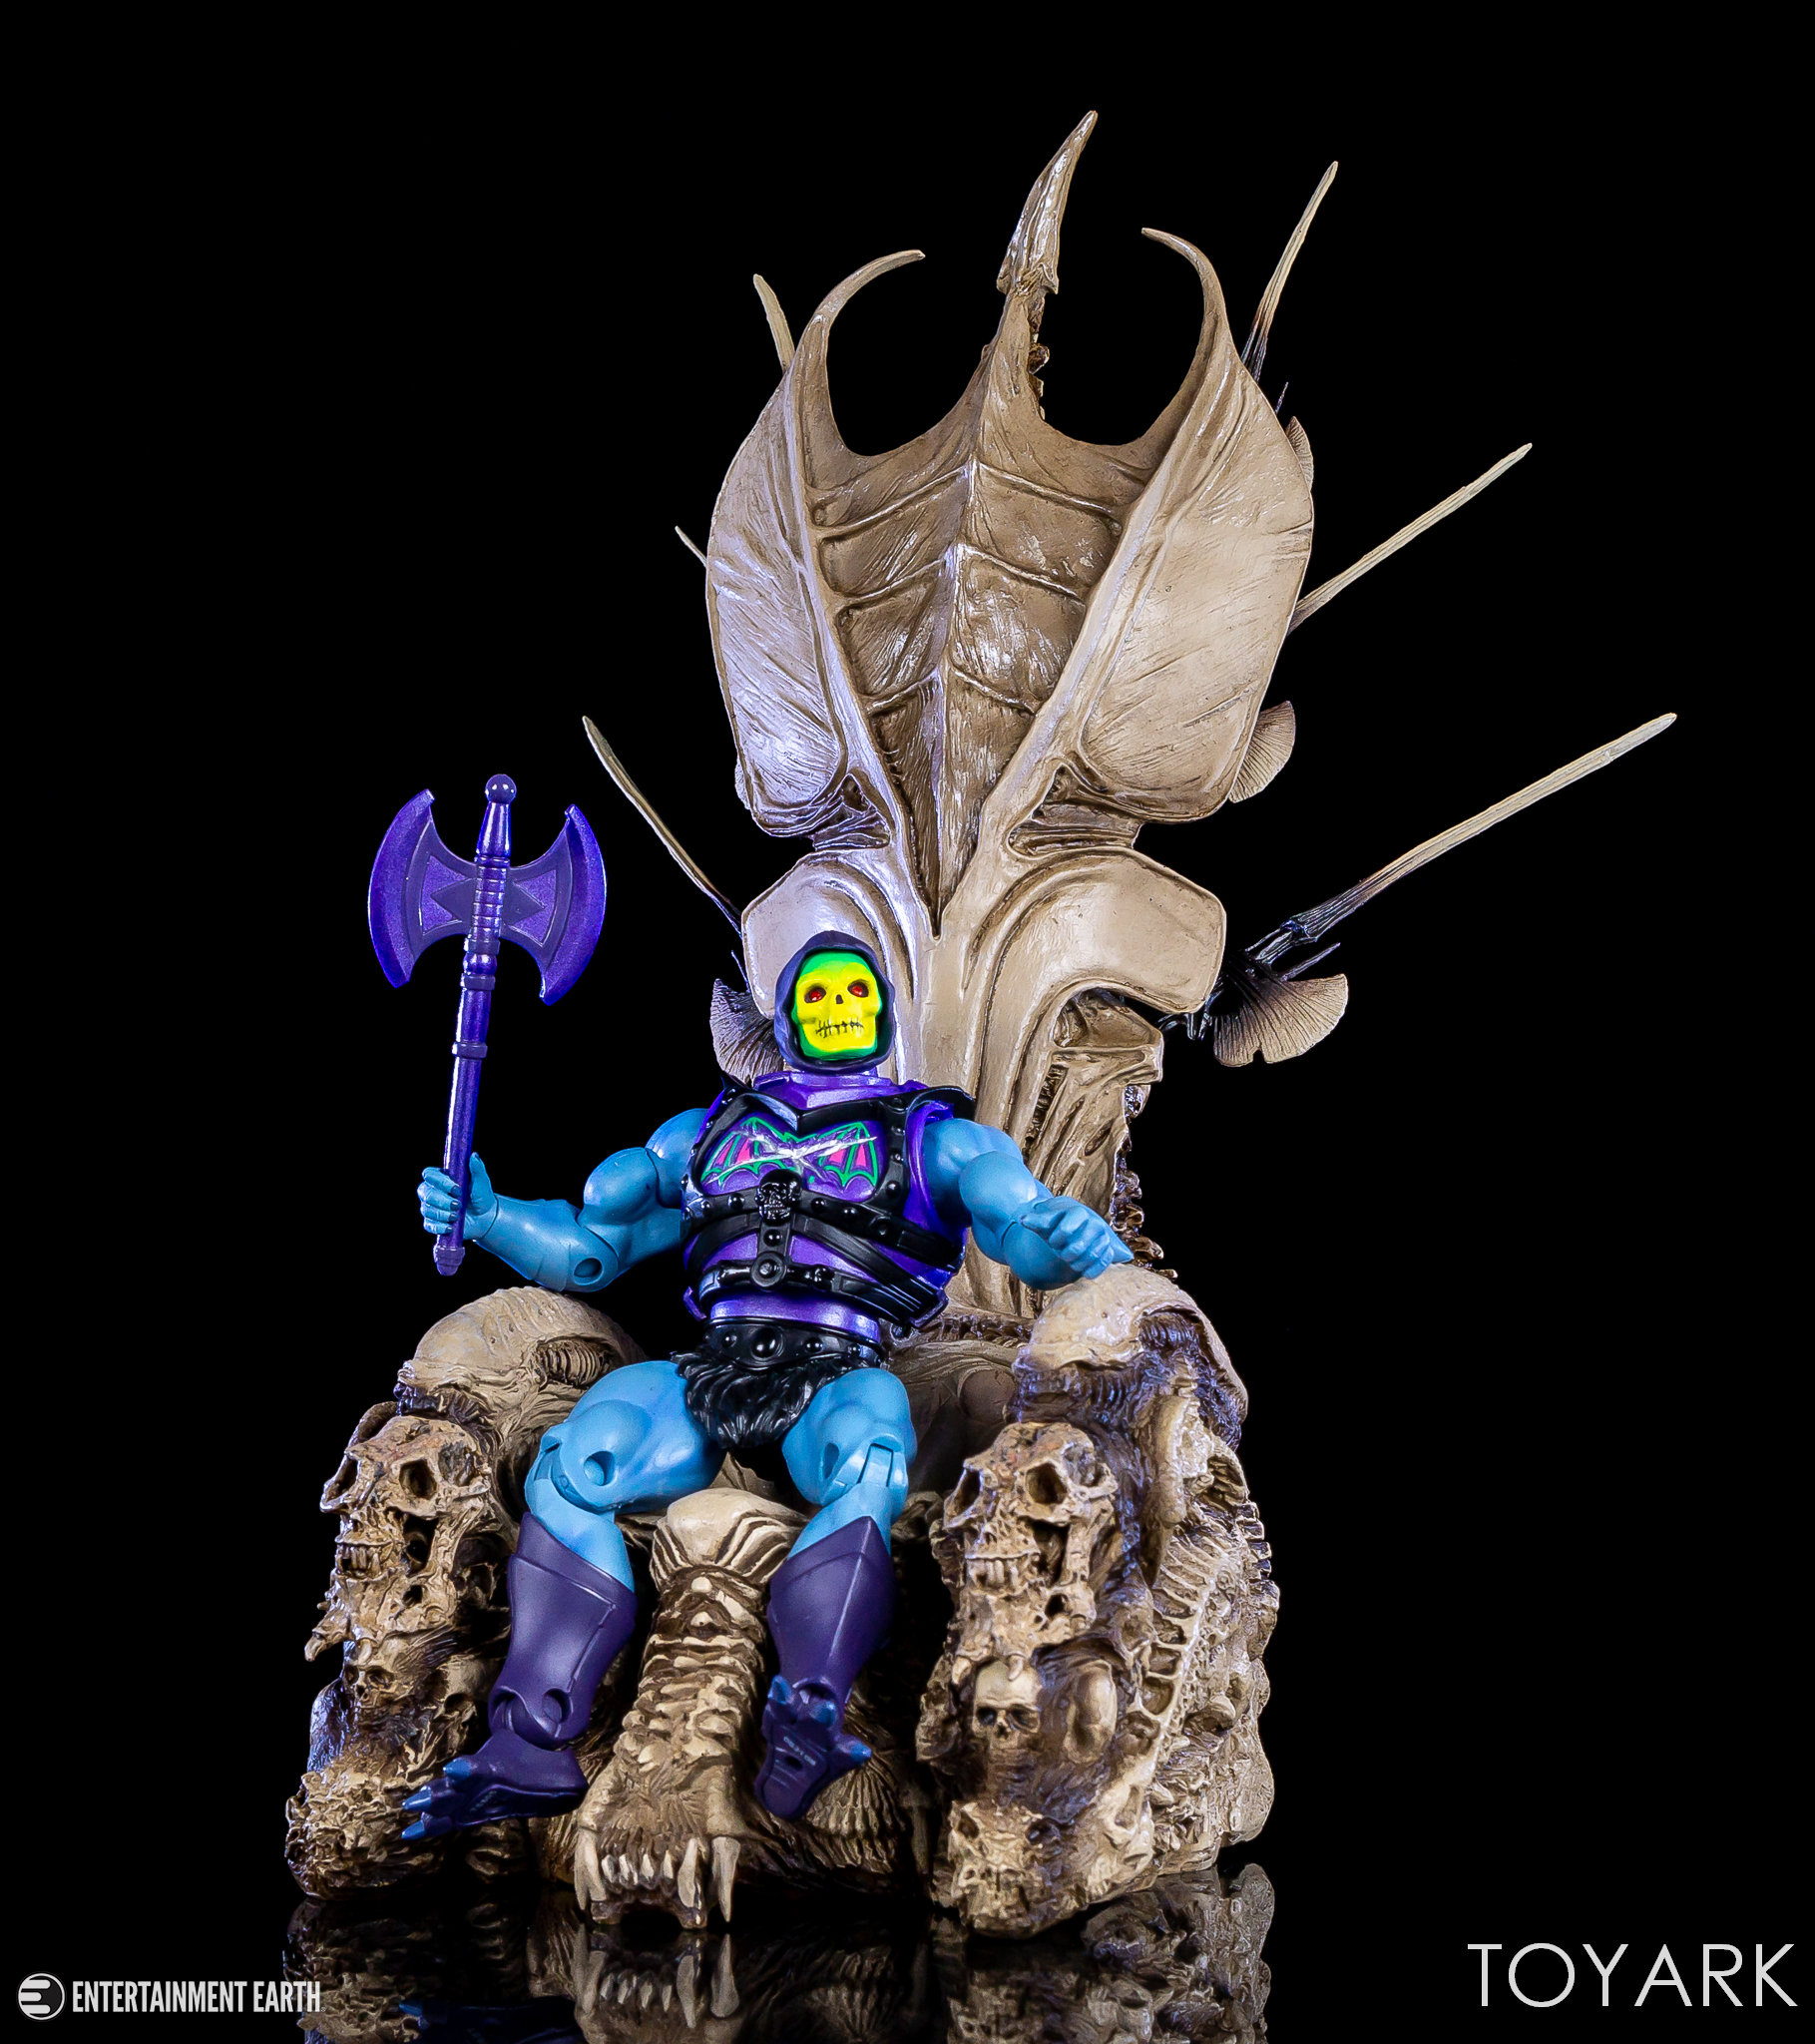 https://news.toyark.com/wp-content/uploads/sites/4/2018/05/NECA-Predator-Throne-032.jpg